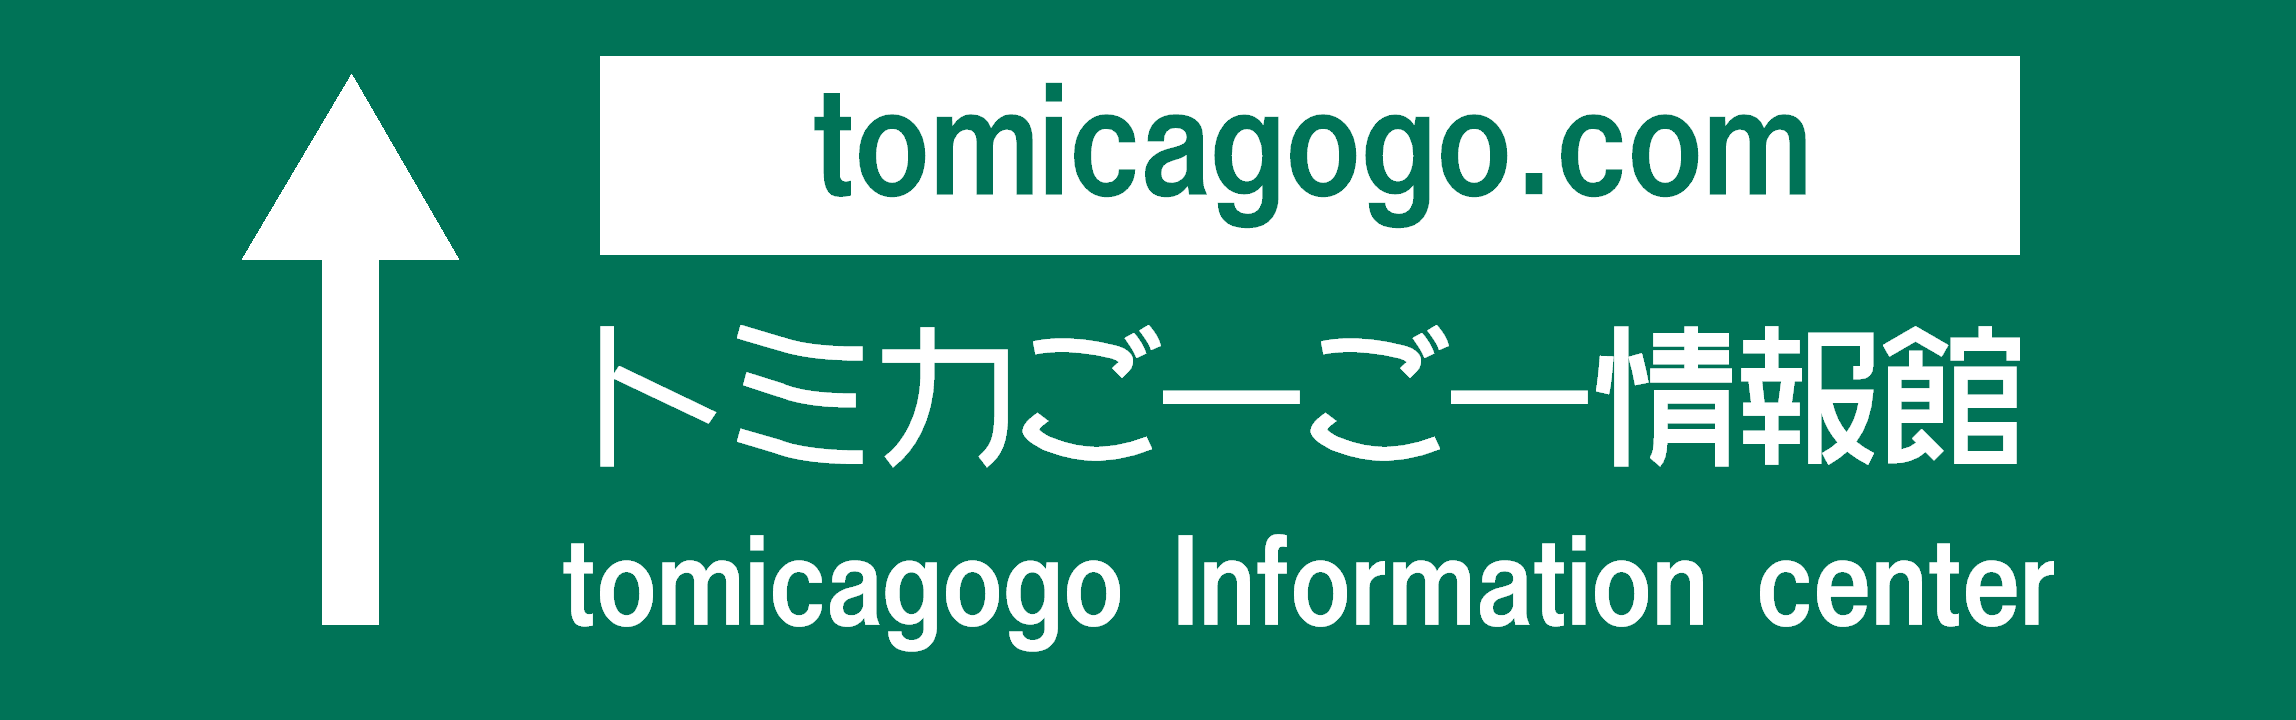 tomicagogo_blog_top_2000_600.png